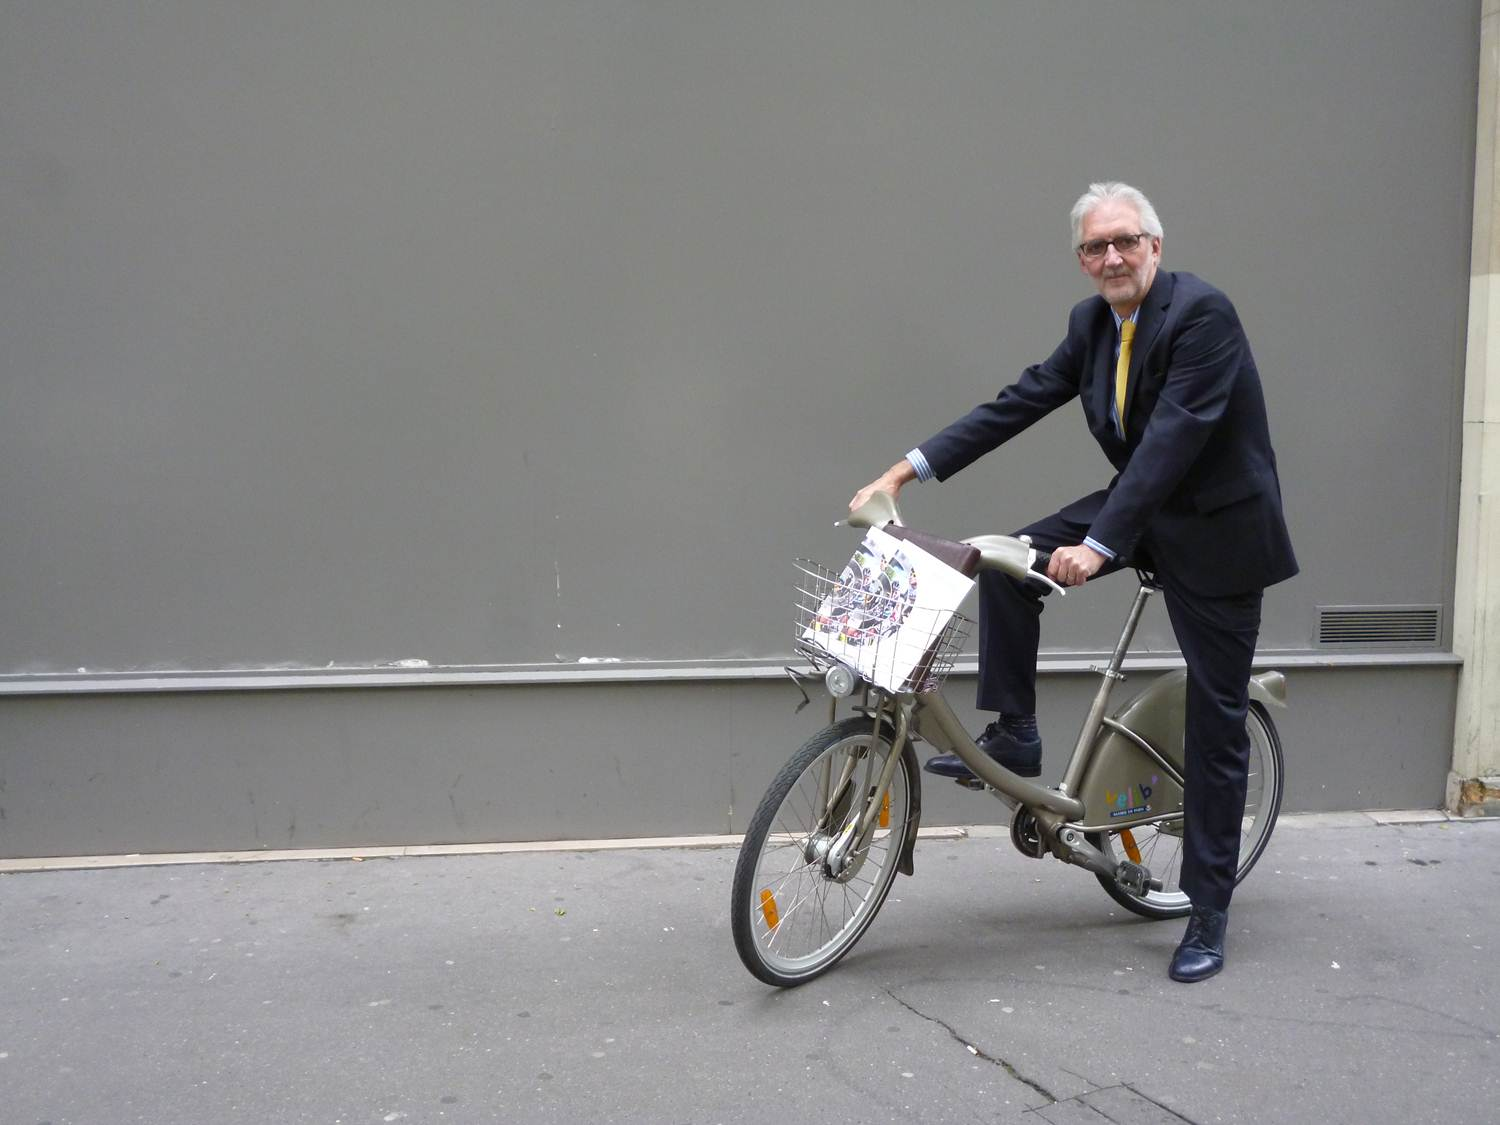 Candidate, to facilitate meeting to Tour de France